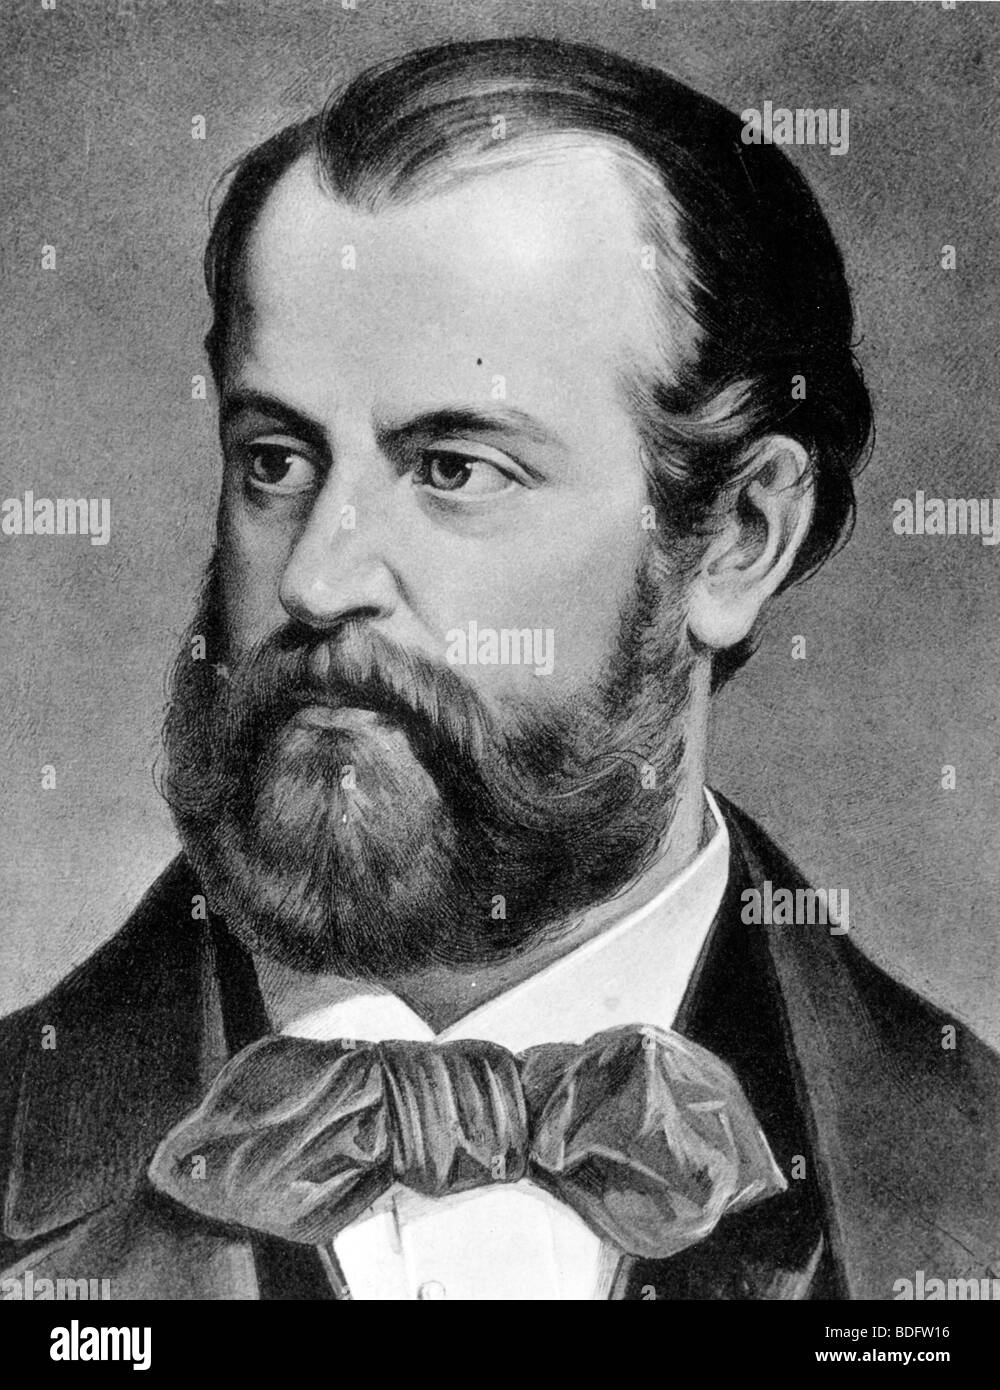 CHARLES GOUNOD, (1818-1893) French composer of operas including Faust, also many songs, church music and symphonies. - Stock Image